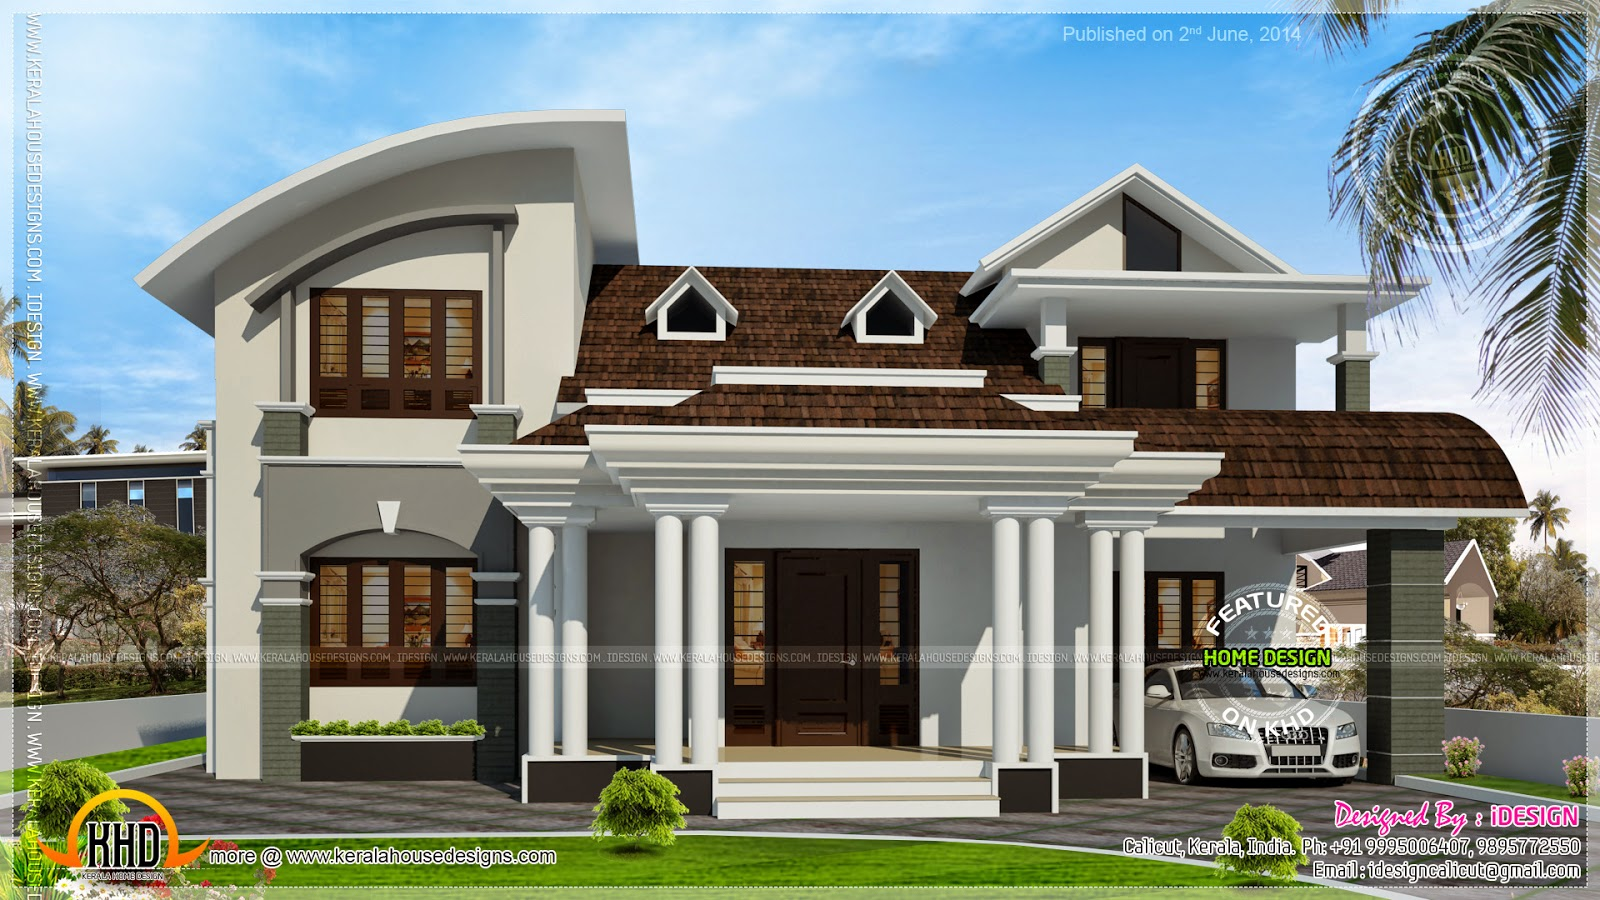 Siddu buzz online kerala home design House window layout